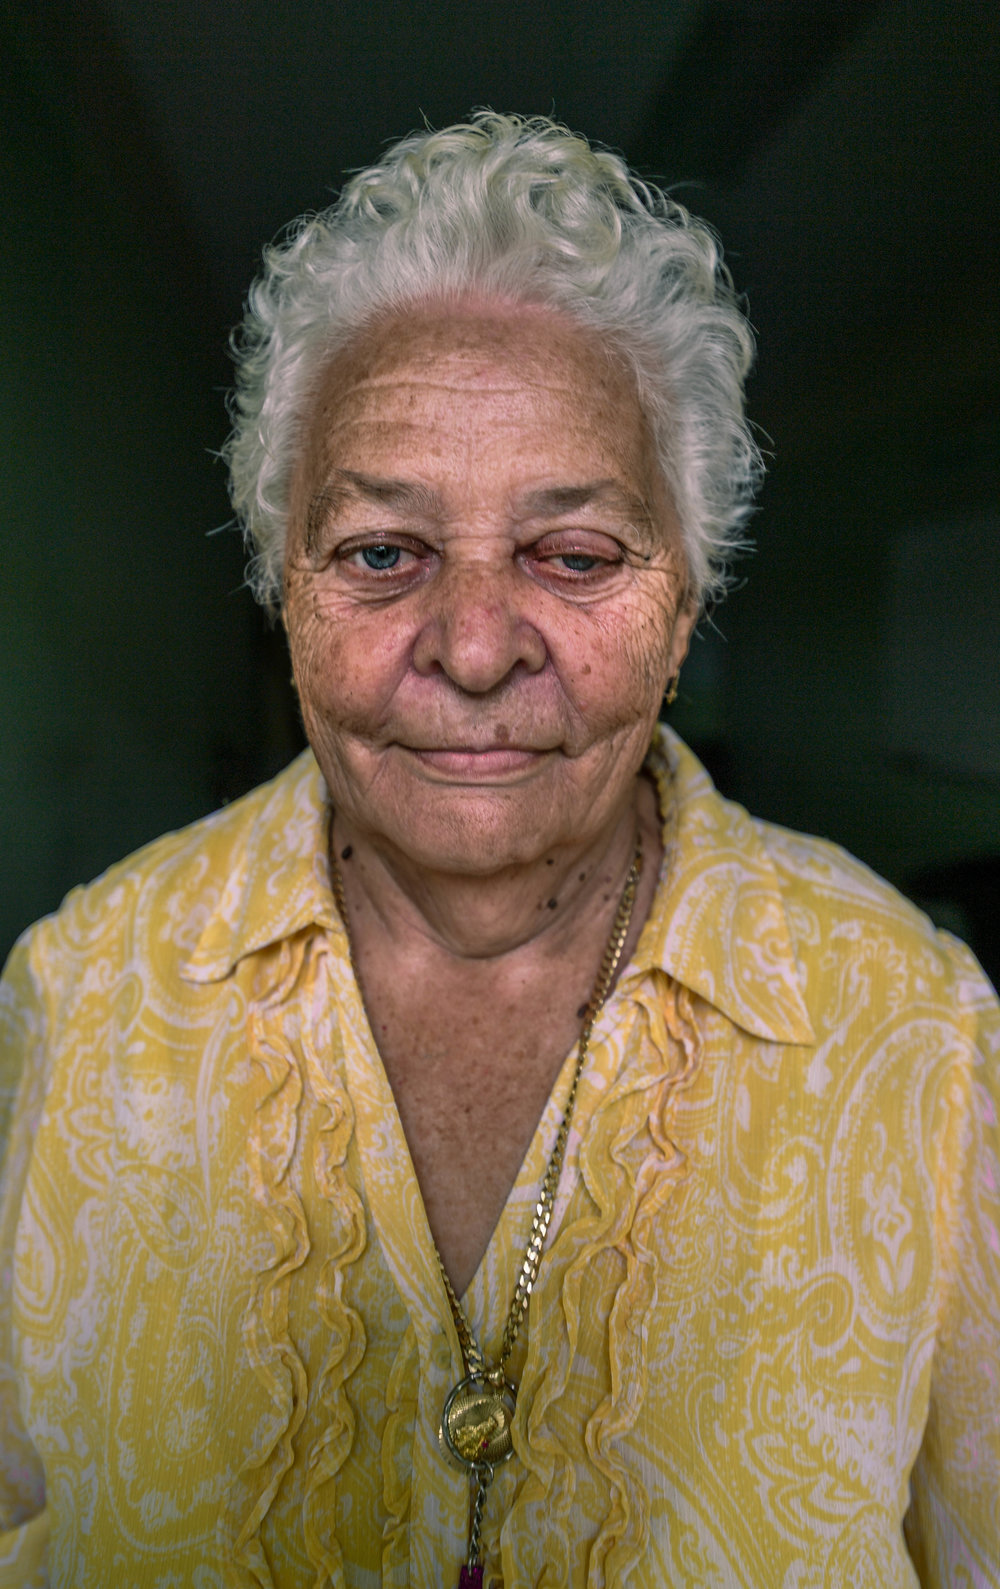 """Josefina Adonte, 71, stands in her room at the Adjuntas shelter. Before the storm, Adonte was living in assisted care. Now, she struggles to take care of herself in the shelter with no nurse. Because of glaucoma and dementia, Adonte cannot complete daily tasks, like taking herself to the bathroom at night. """"No one is there for me, so I just lay there,"""" Adonte said. The Adjuntas shelter plans to close soon, leaving many of its residents homeless. """"I don't know where I'll go,"""" Adonte said. """"If I am alone, I will die."""""""